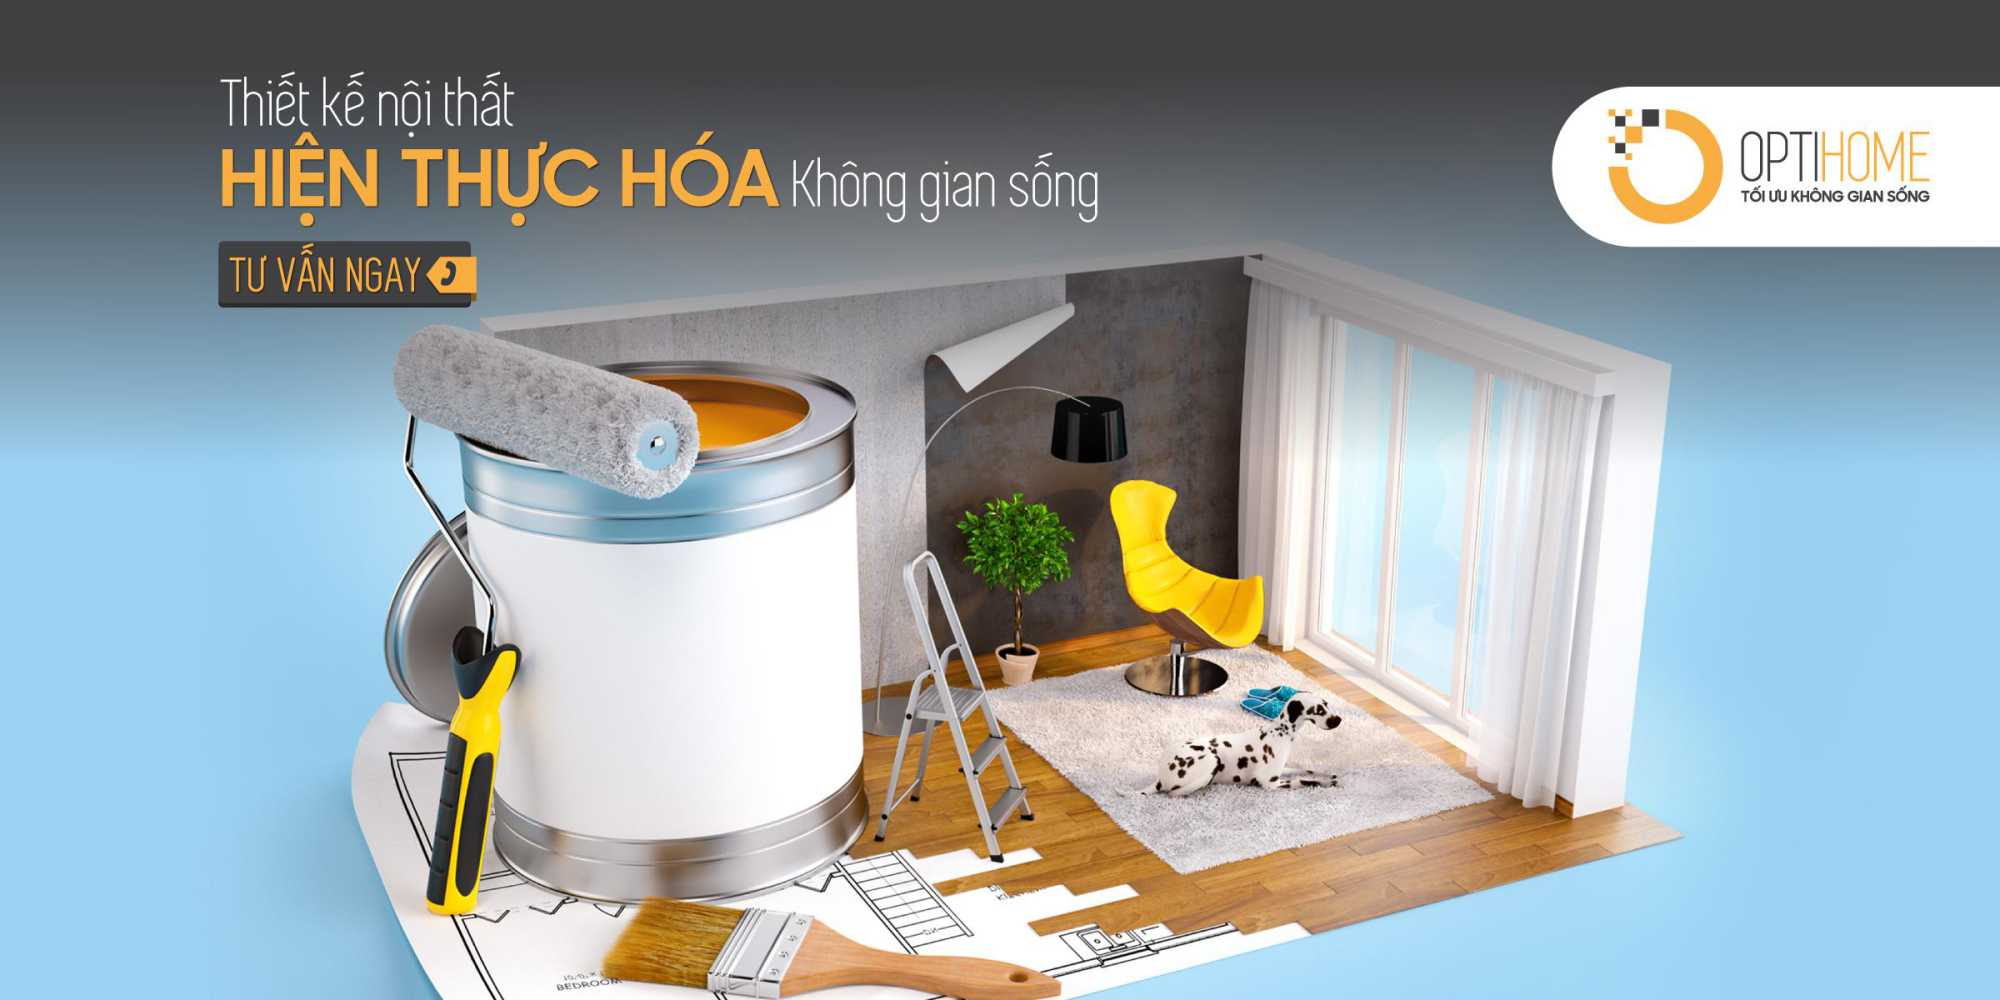 https://optihome.vn/pages/thiet-ke-noi-that